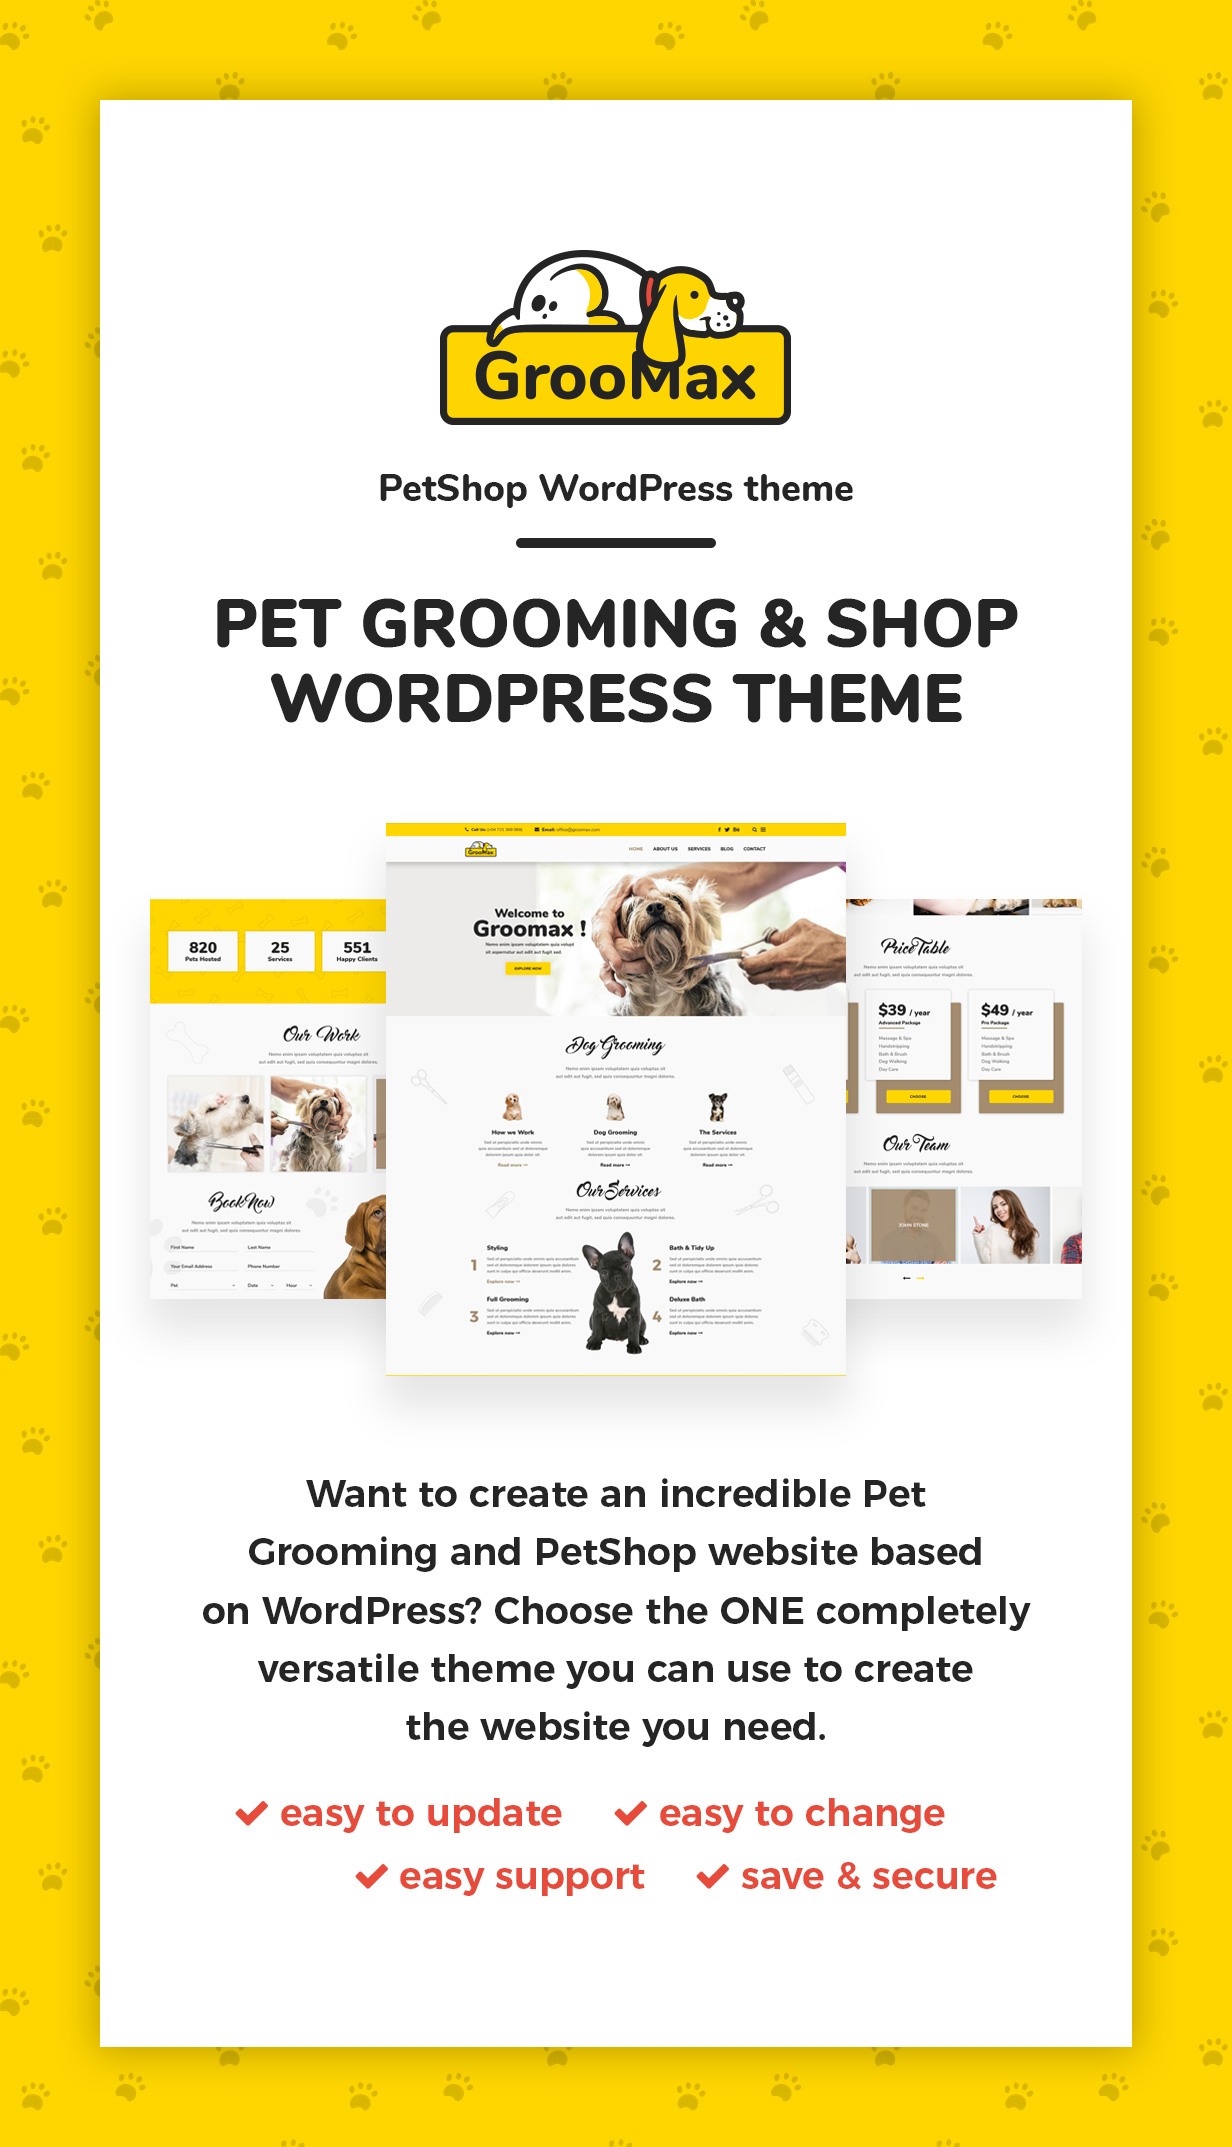 Groomax - Pet Grooming & Shop WordPress Theme - 1